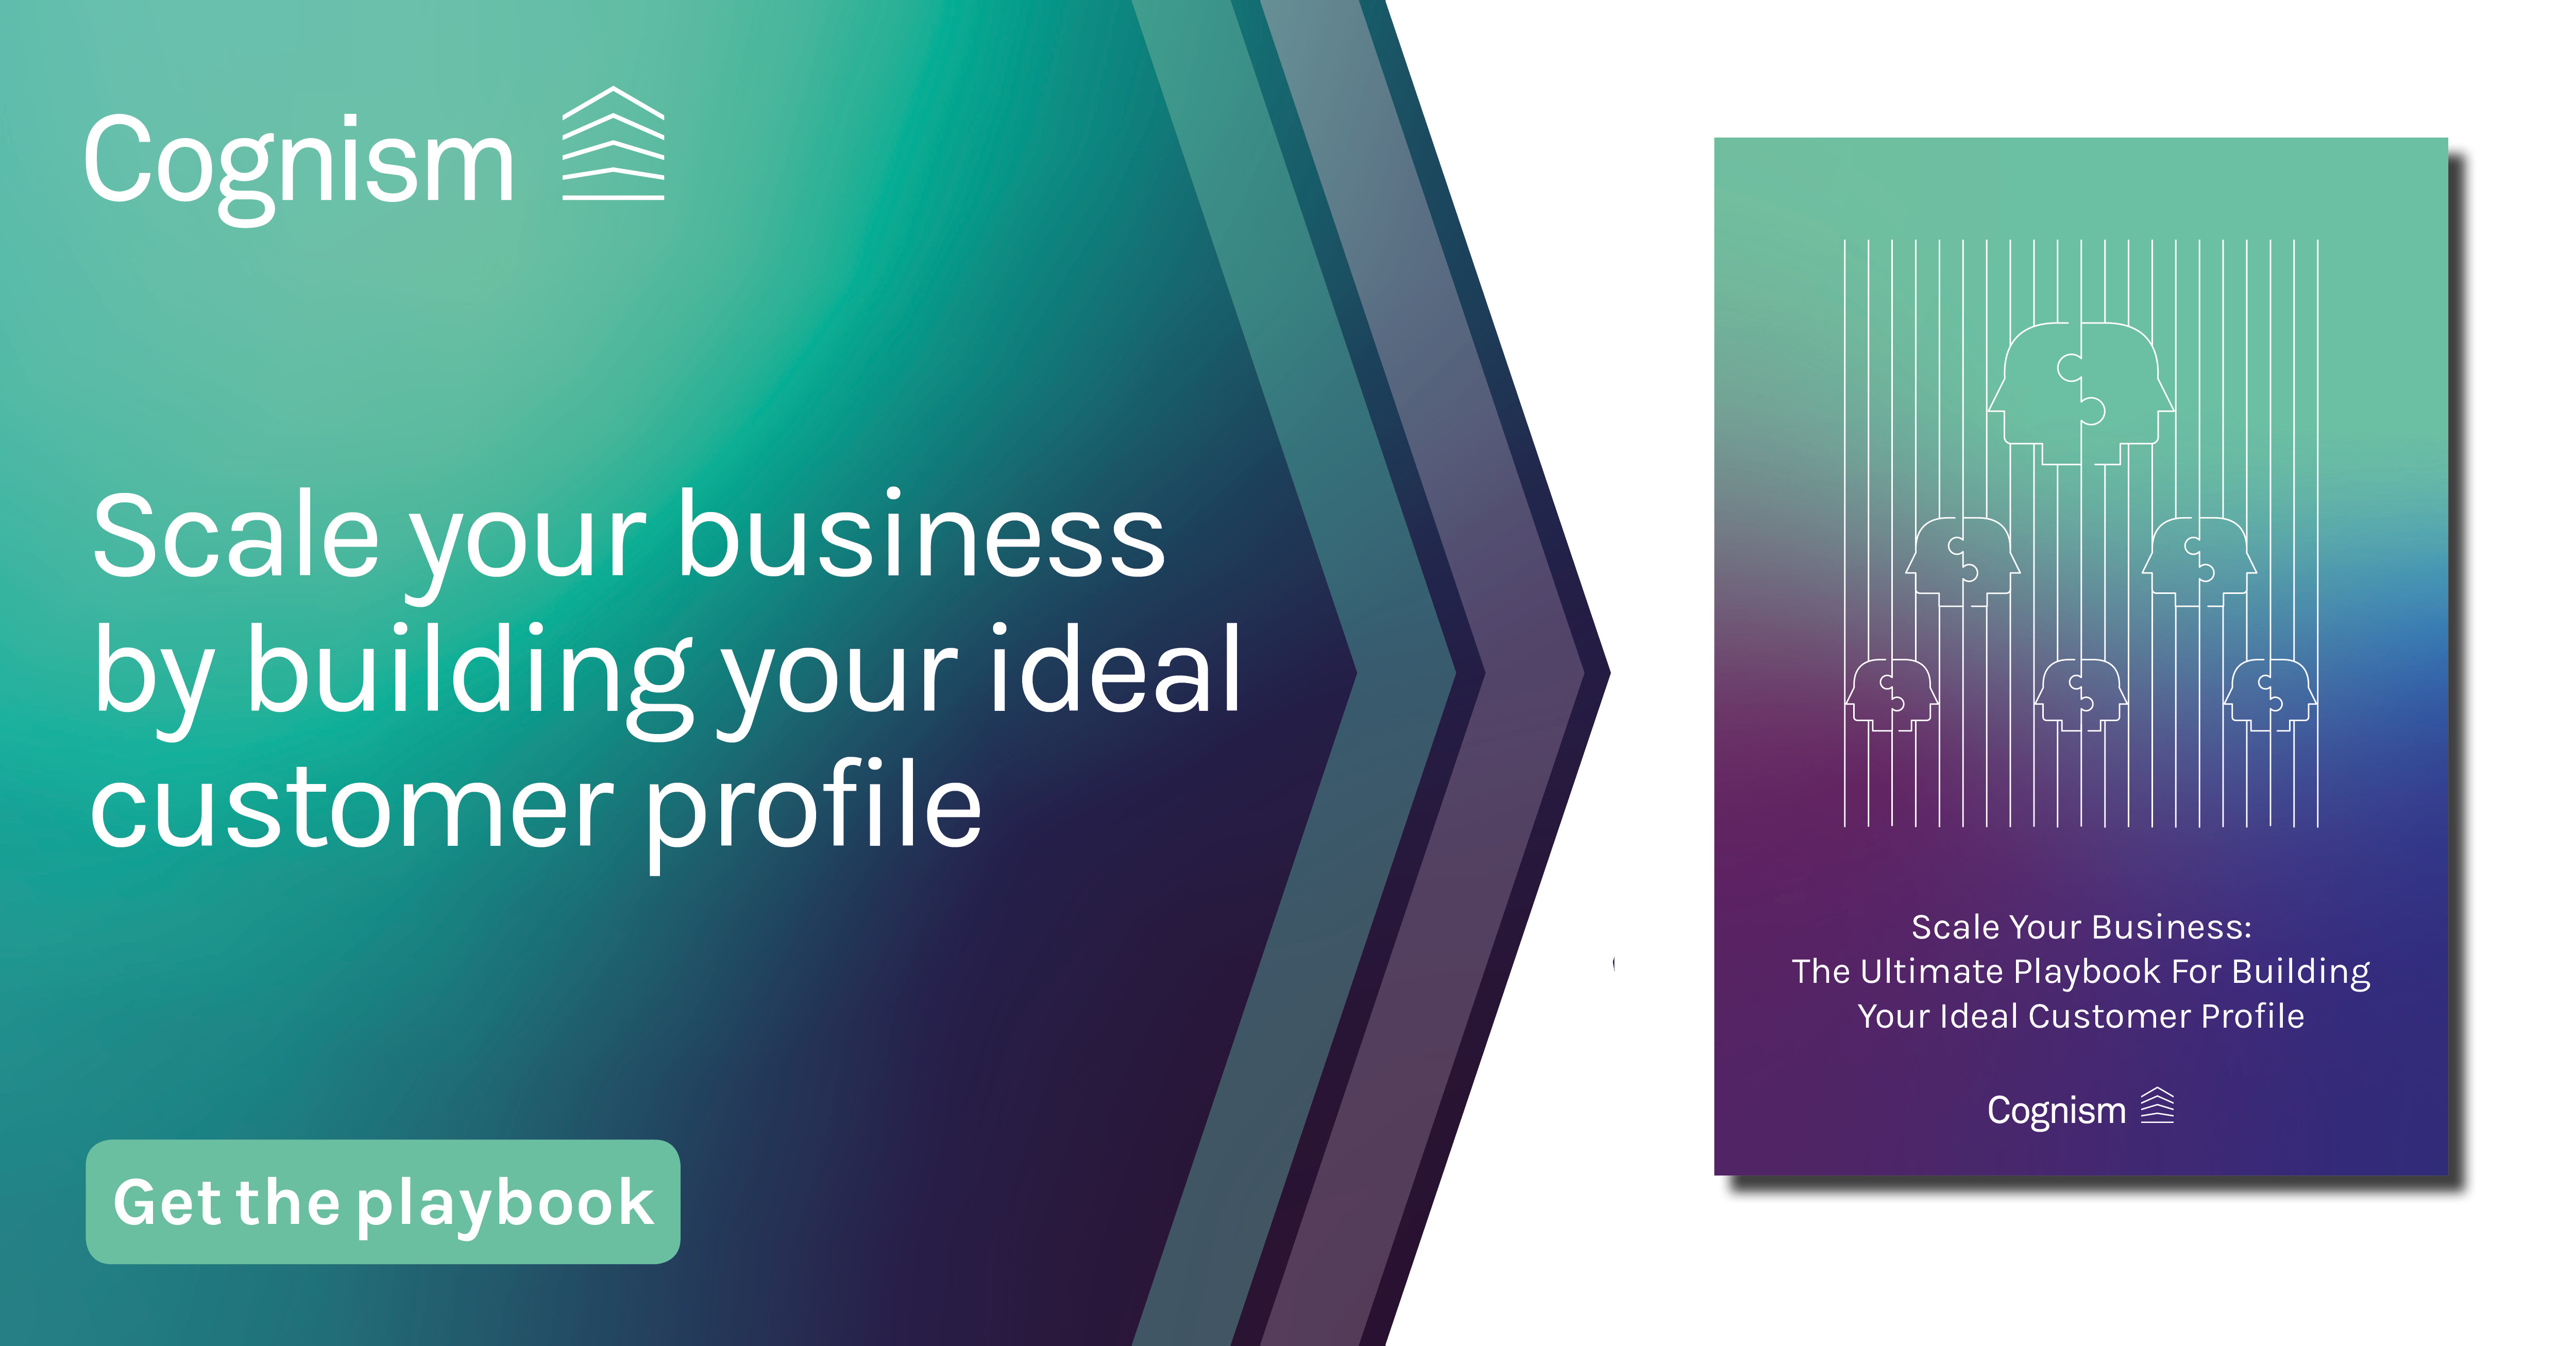 The ultimate playbook for building your ideal customer profile